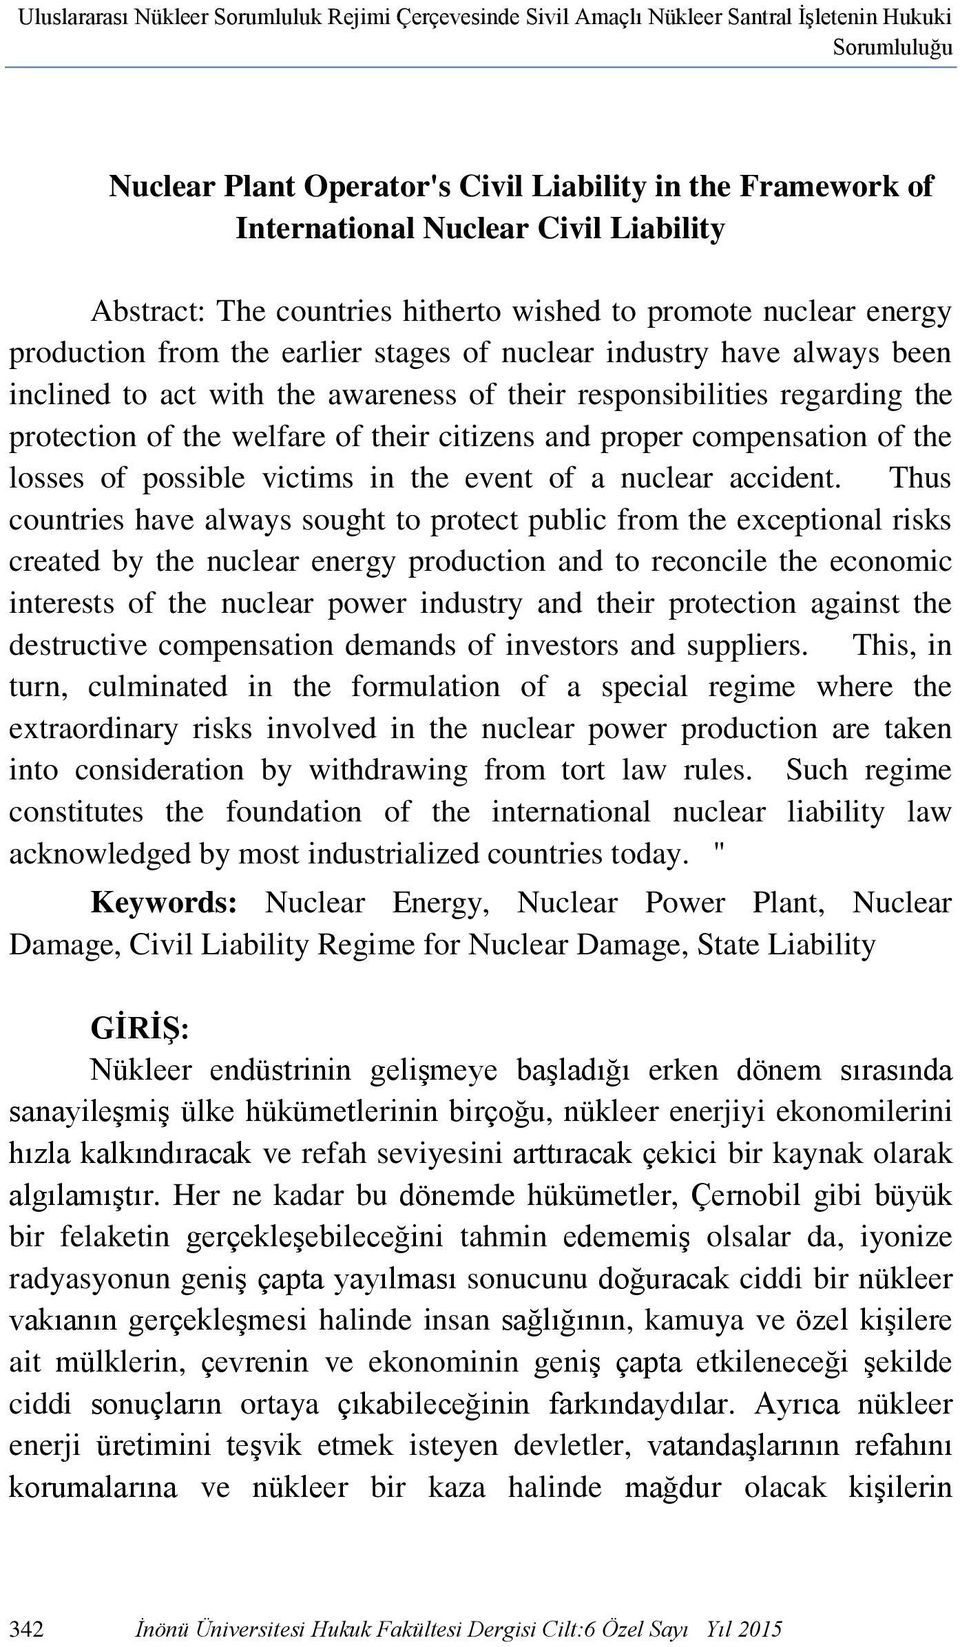 responsibilities regarding the protection of the welfare of their citizens and proper compensation of the losses of possible victims in the event of a nuclear accident.